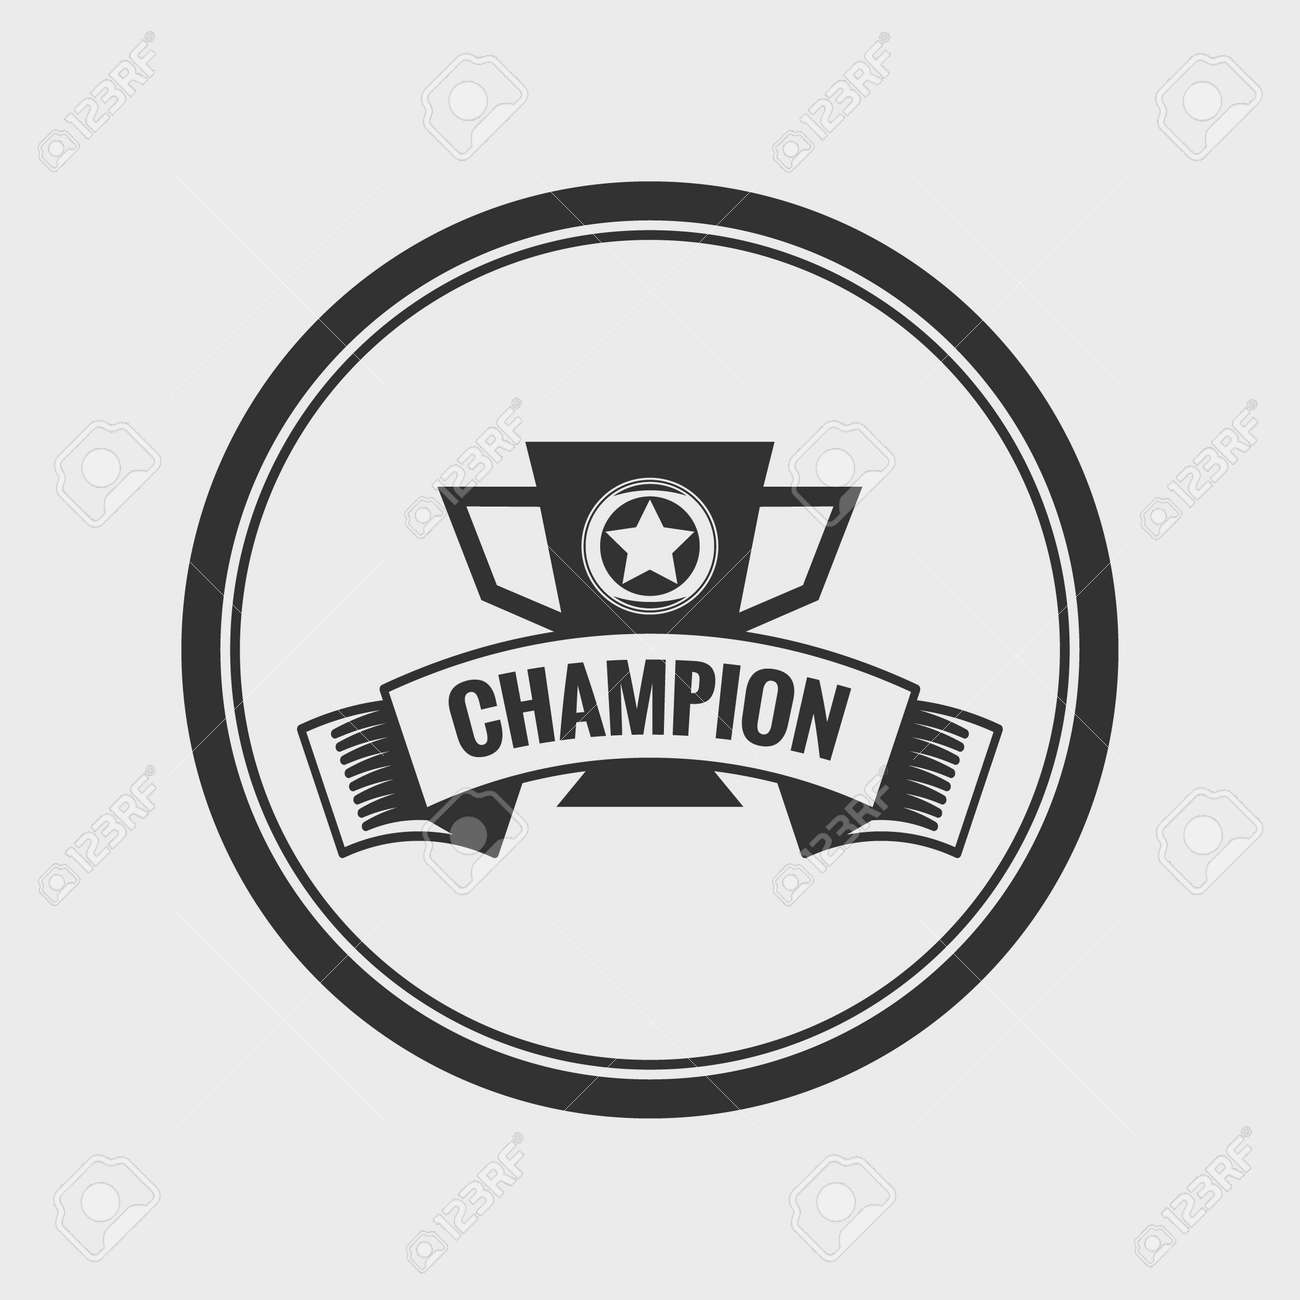 top quality cheapest price competitive price vintage logo brand badge label concept champion,victory,winning,winner..